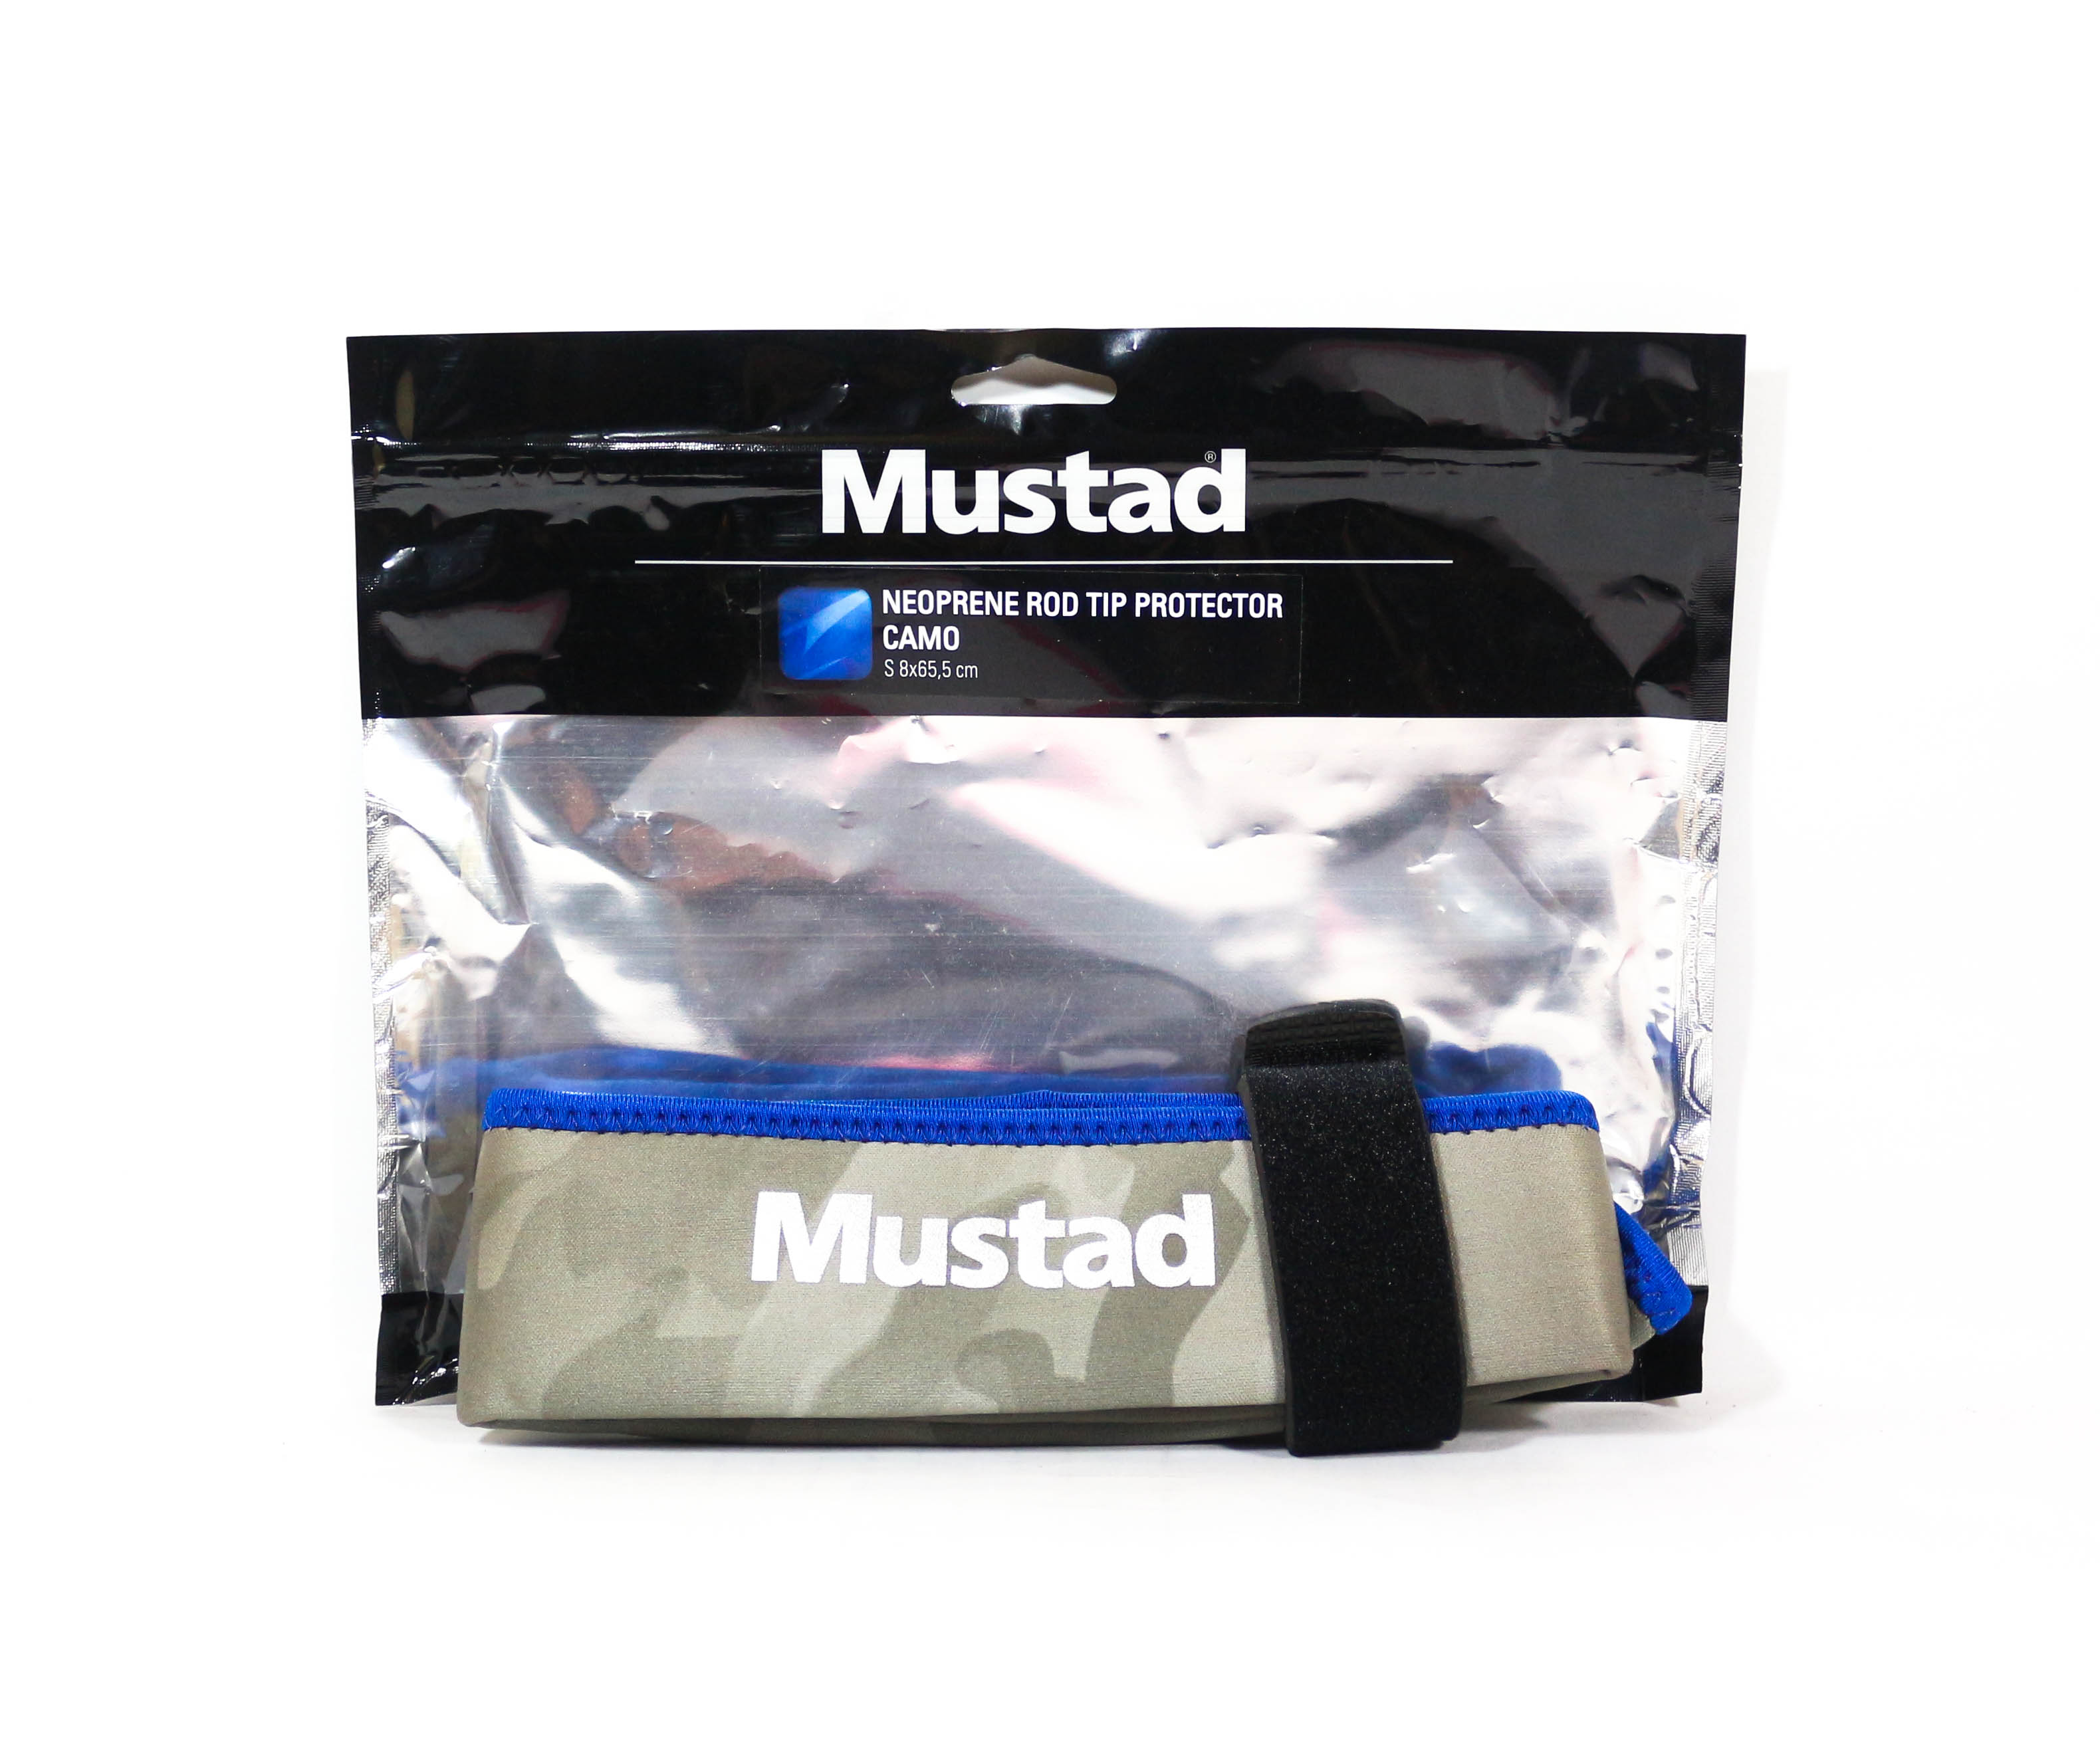 Mustad Neoprene Rod Tip Protector Camou Size S (5476)